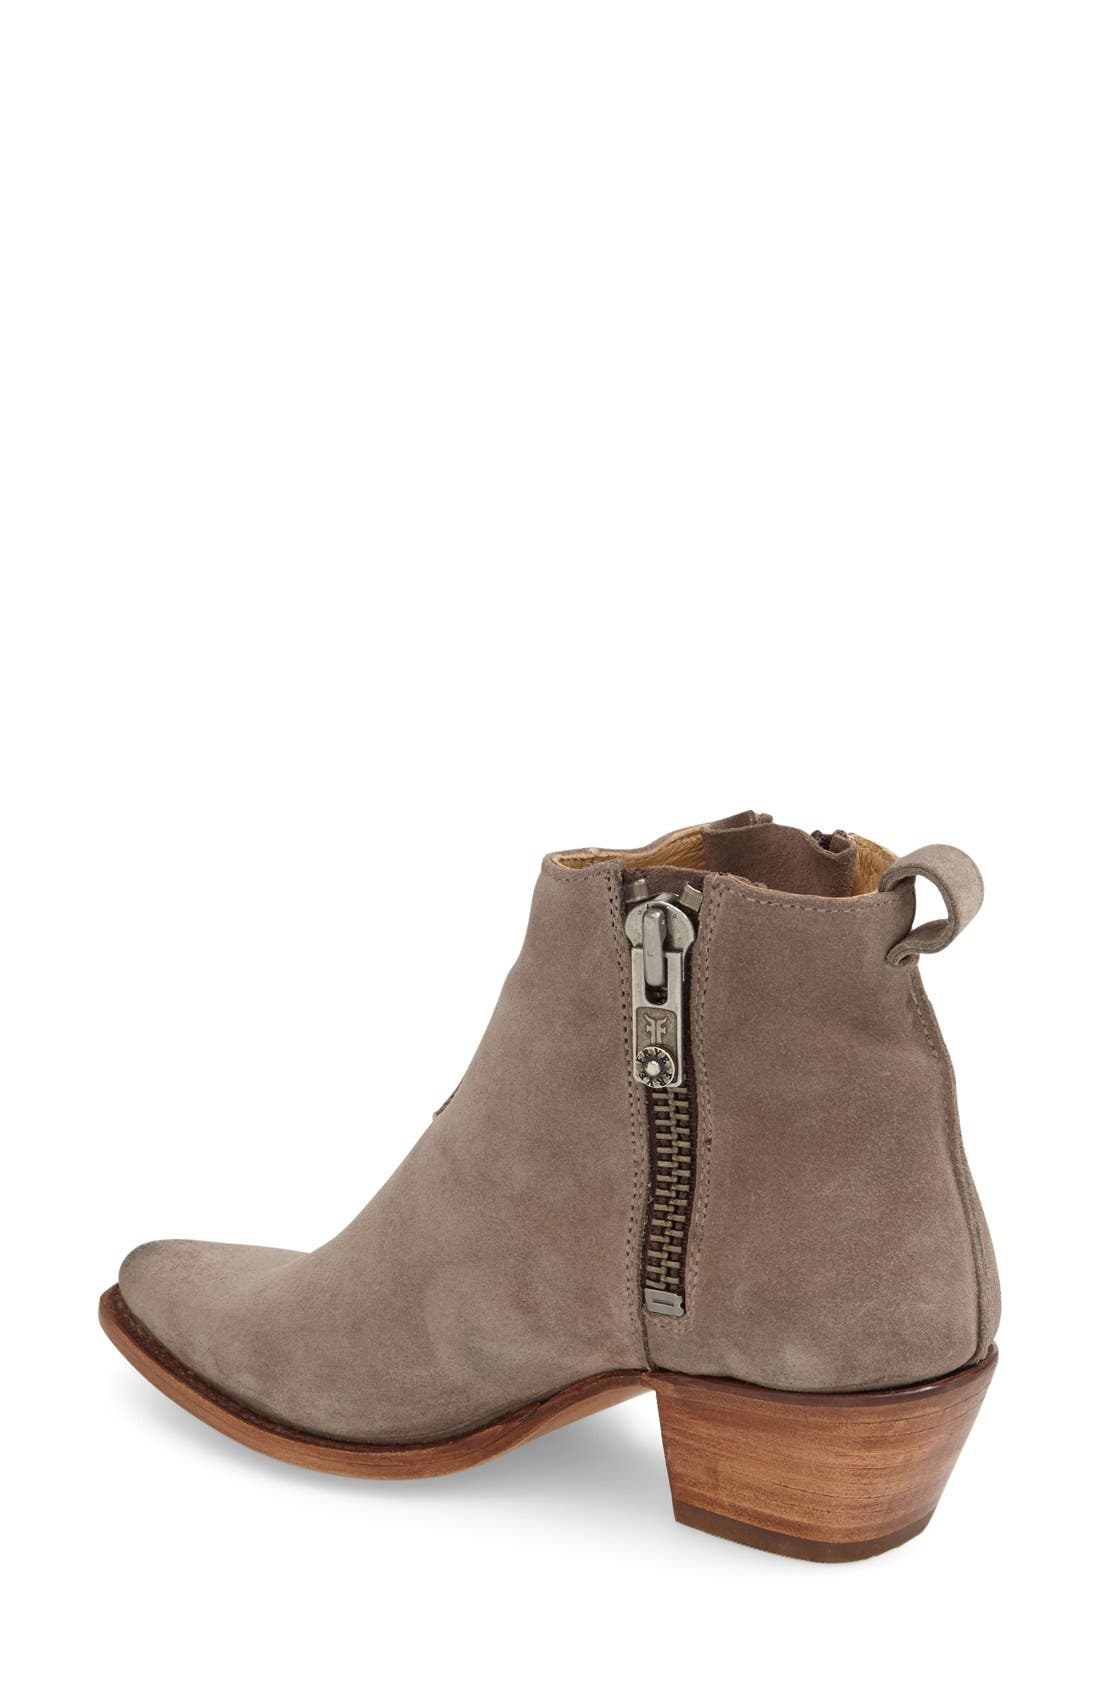 'Sacha' Washed Leather Ankle Boot,                             Alternate thumbnail 8, color,